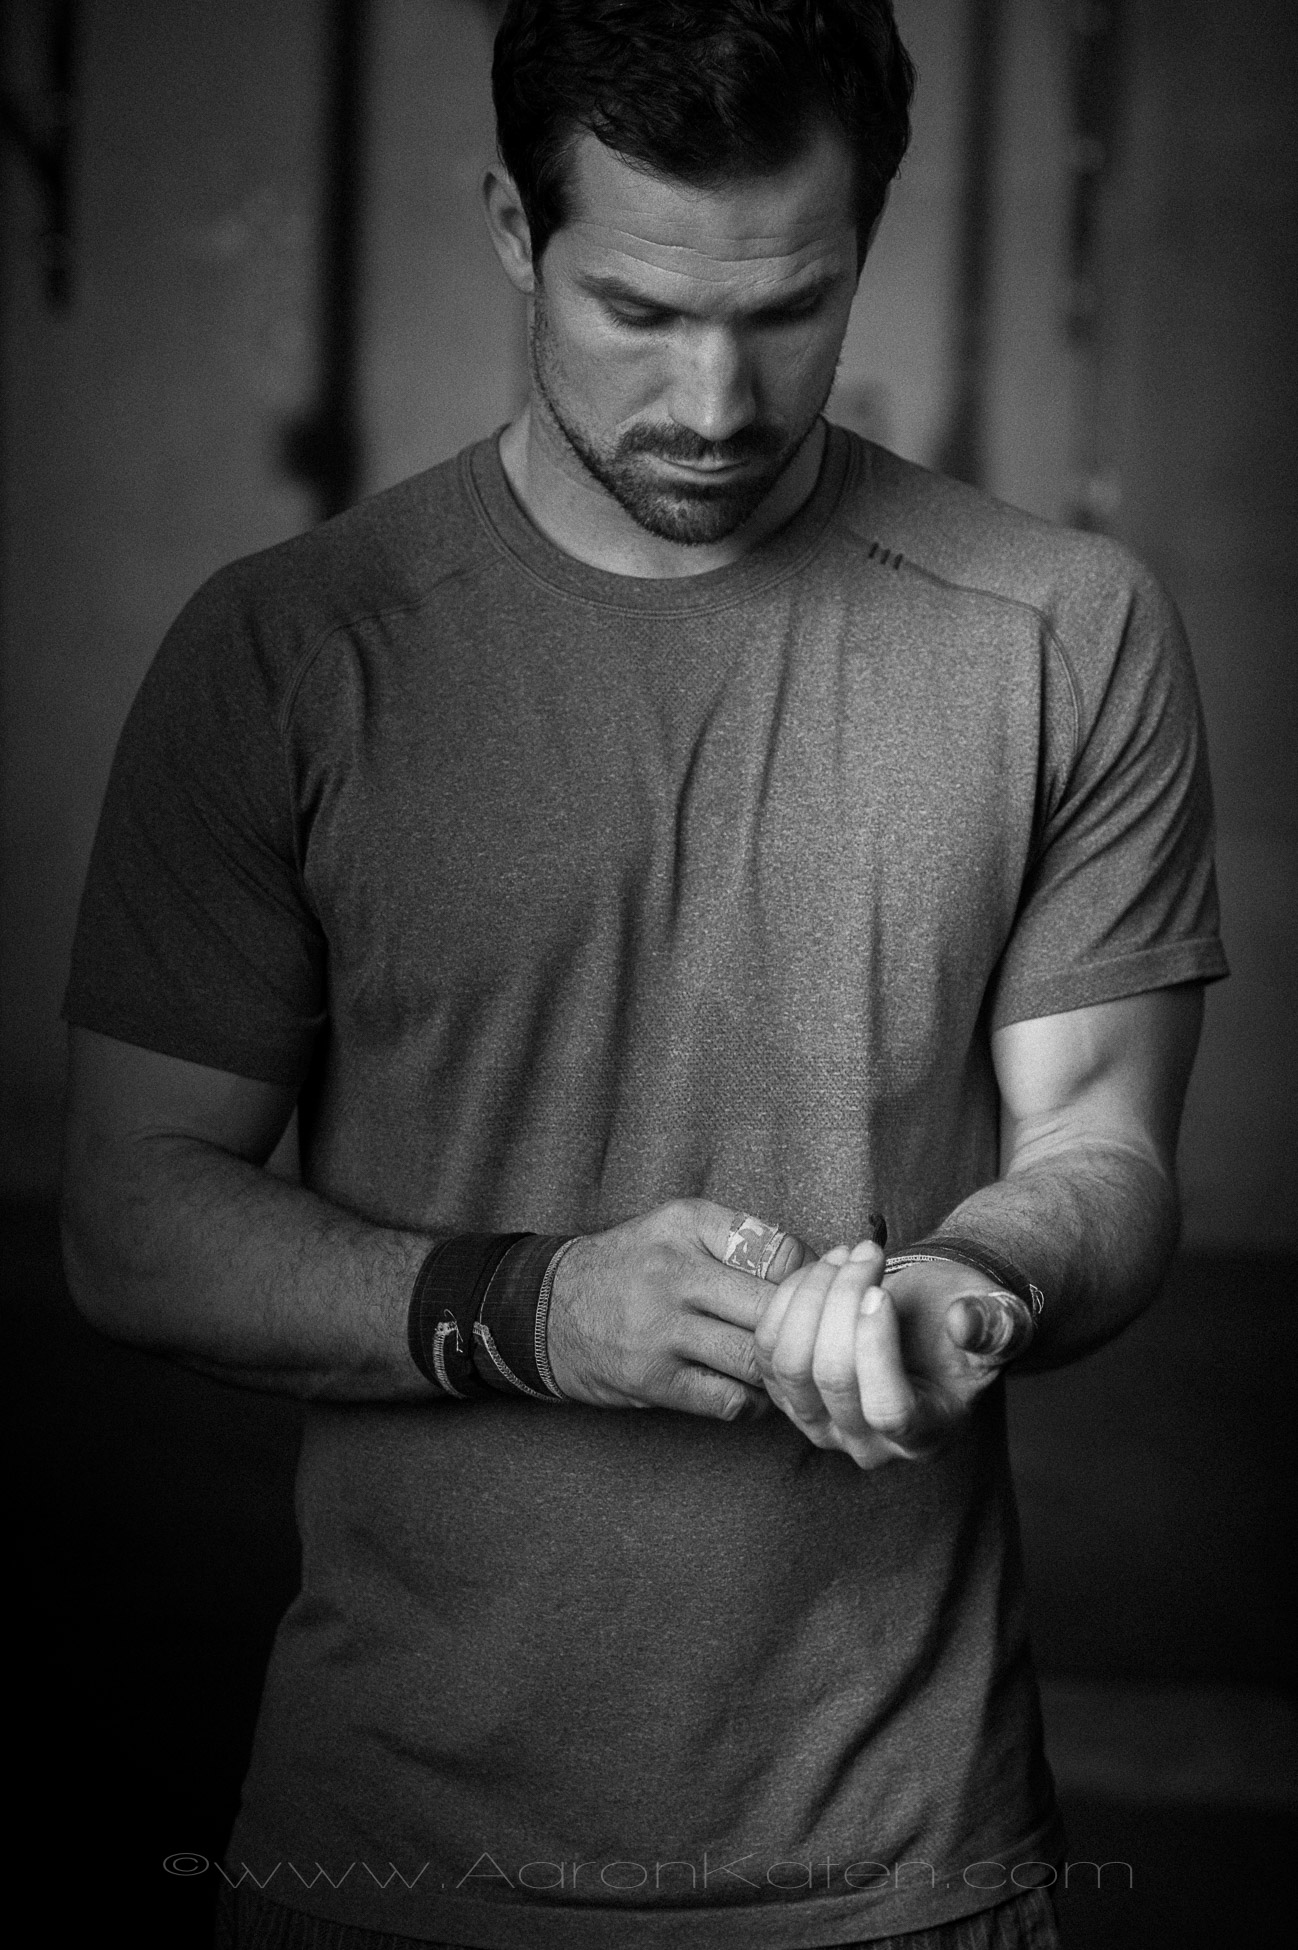 Wrist wraps are an essential accessory to all CrossFit Athletes